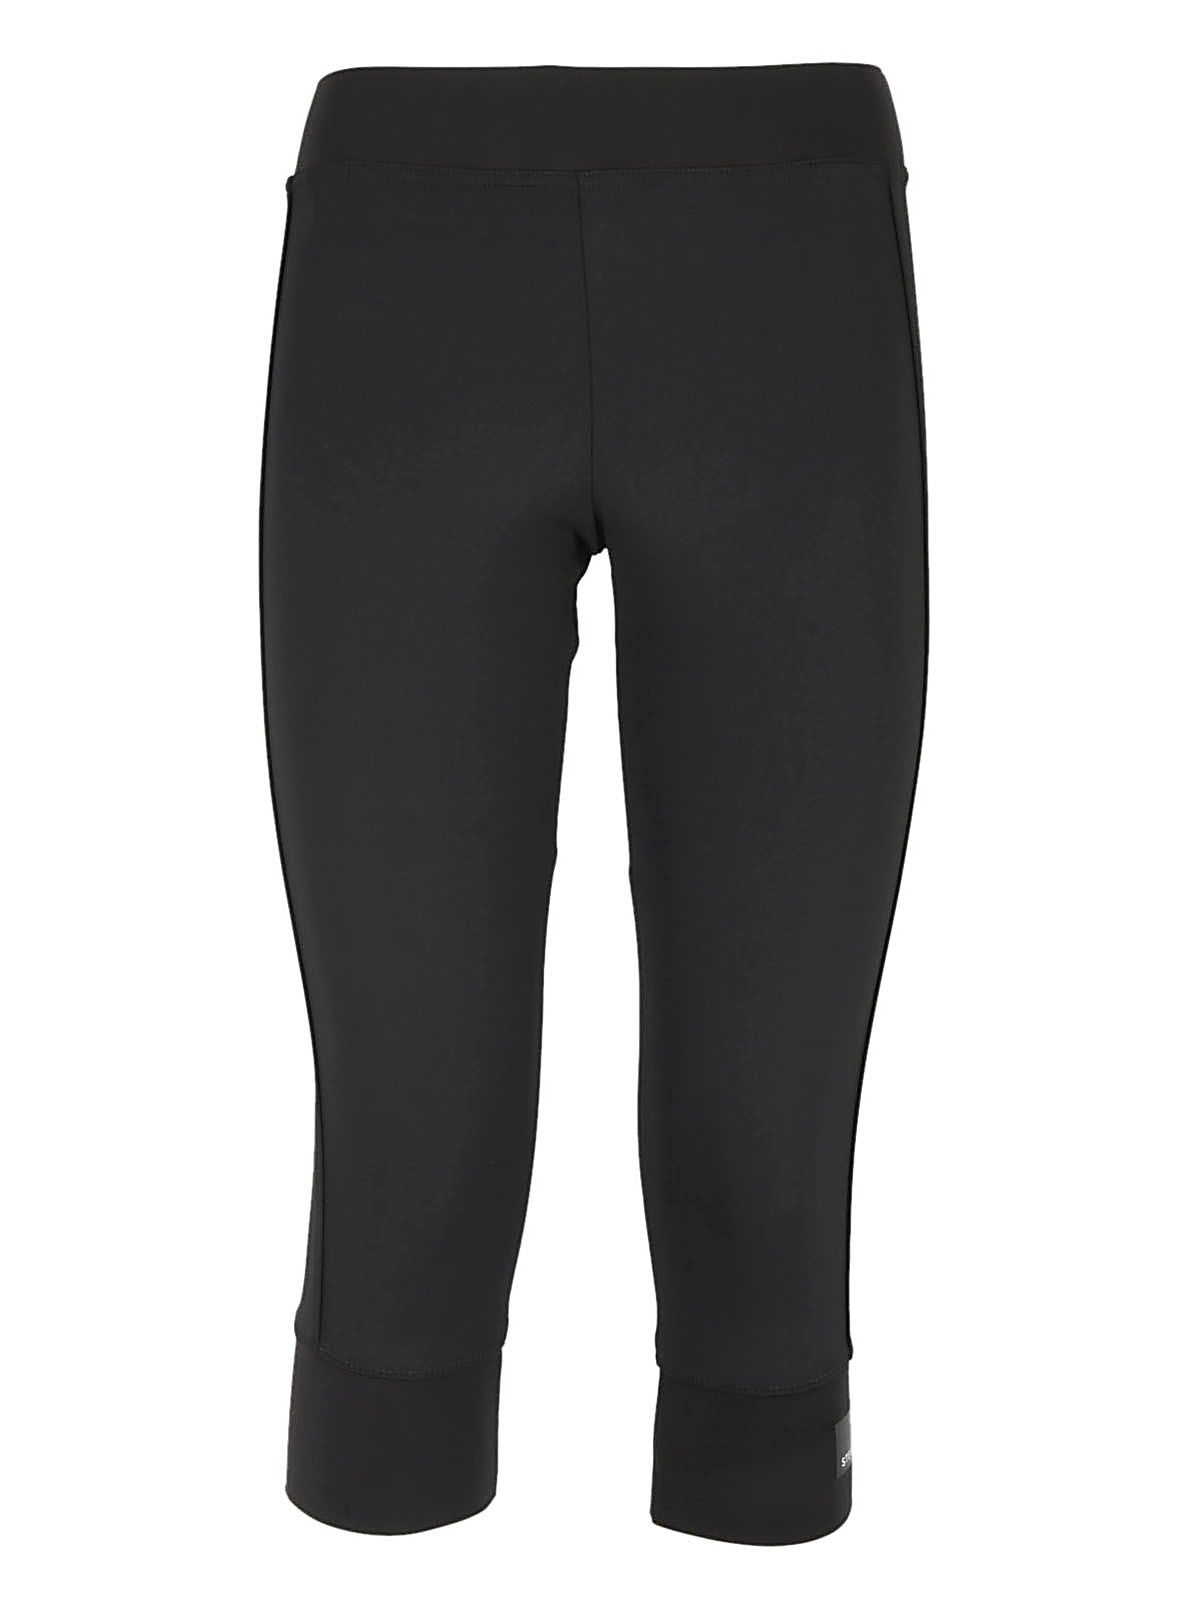 Adidas By Stella Mccartney The Performance Leggings